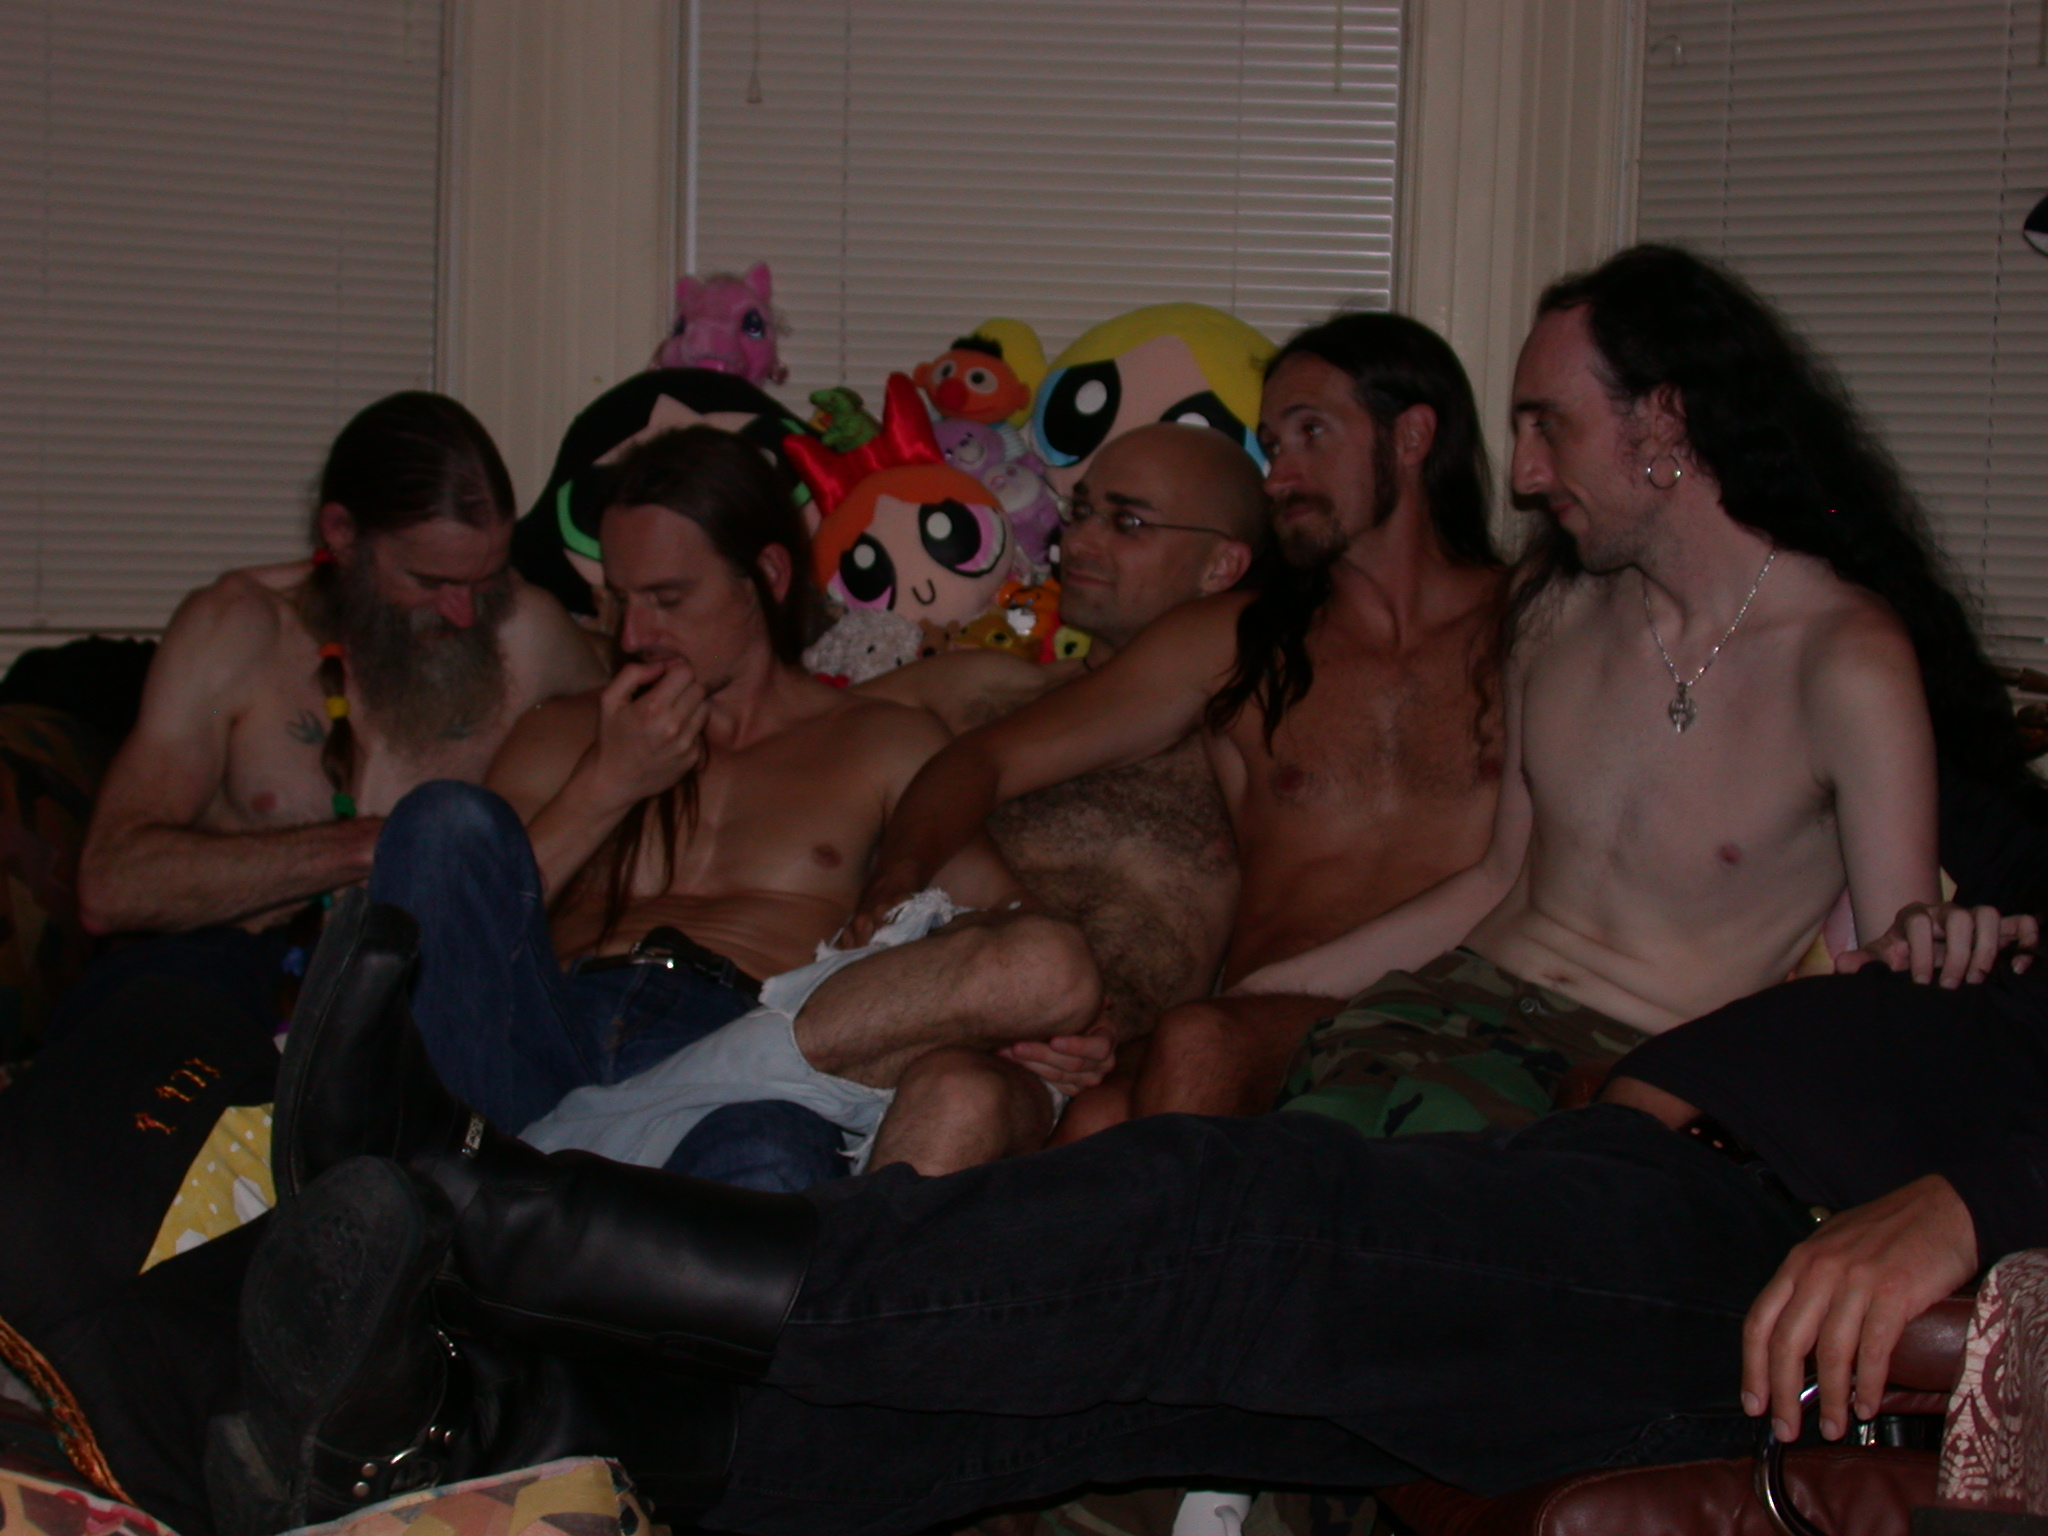 Scott, Rob, Storm, Paul, Johnny, and Unidentified Leather Dude